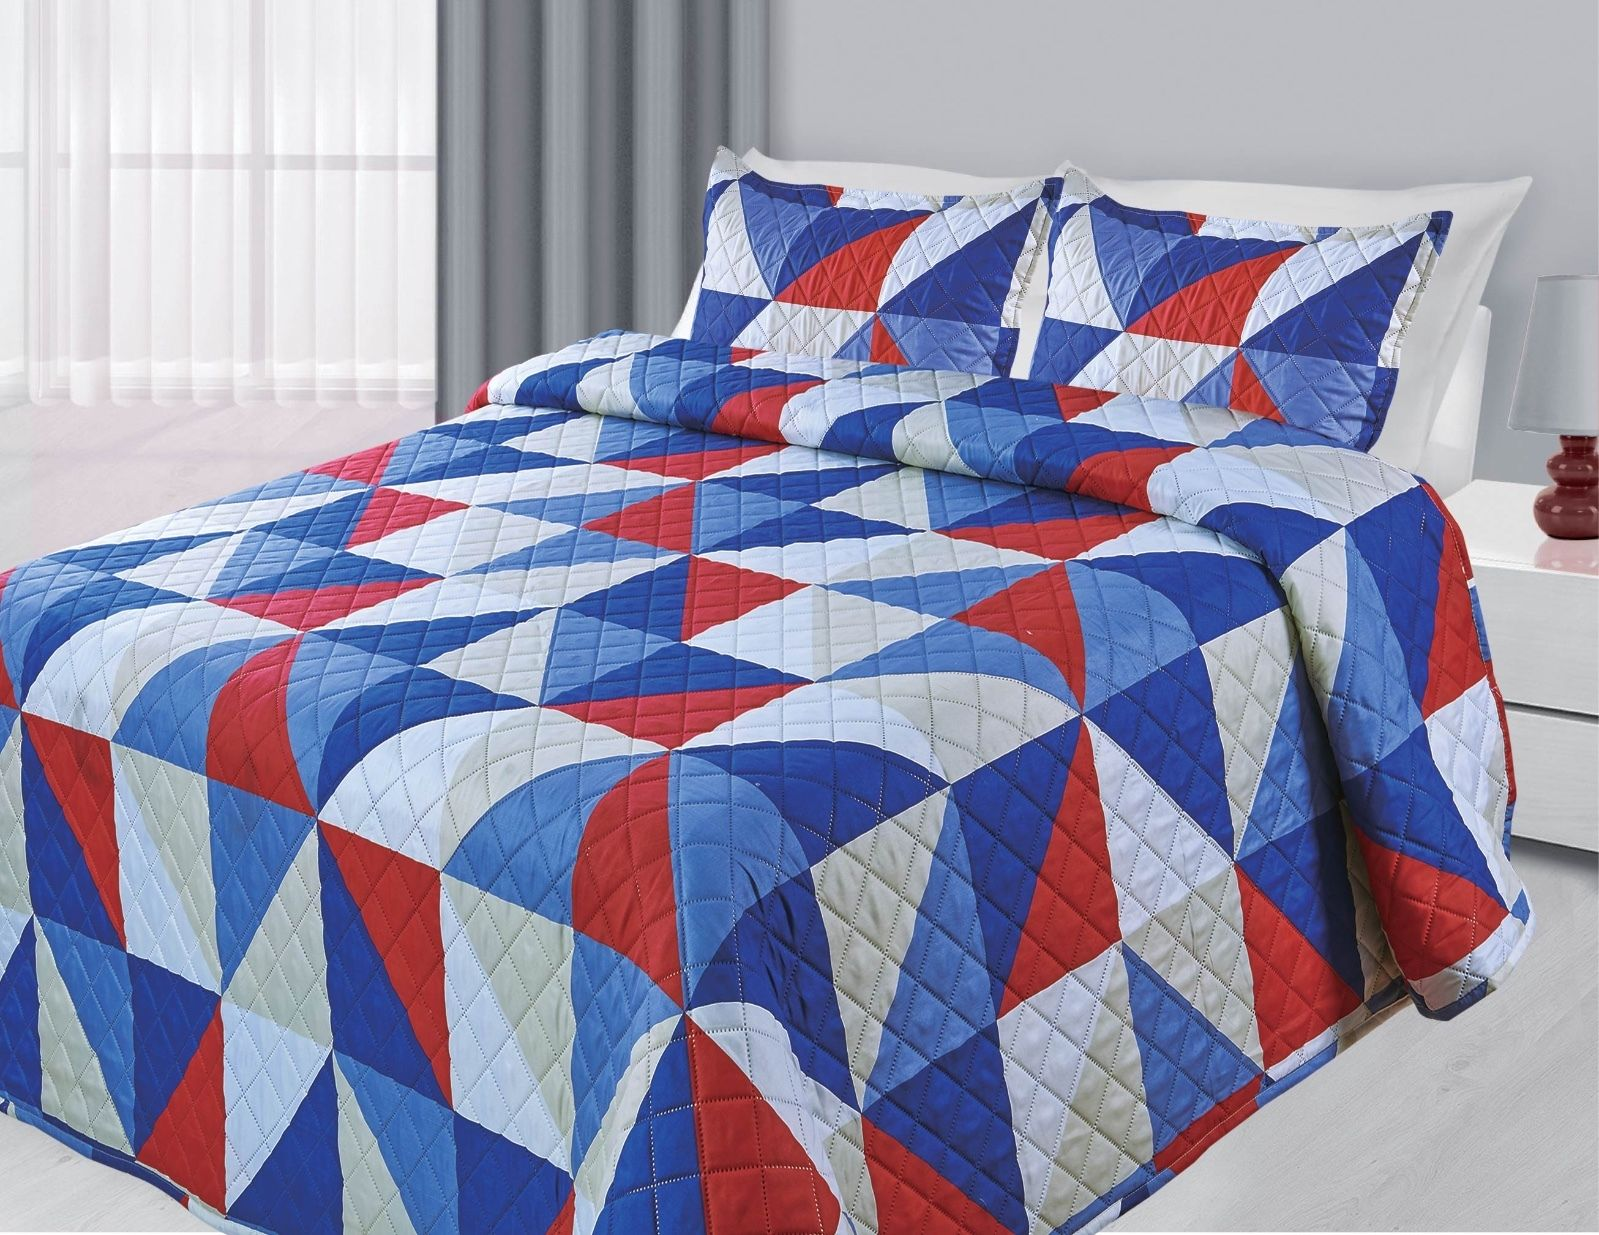 3-Piece Reversible Quilted Printed Bedspread Coverlet Blue & Red Geometric King Size by